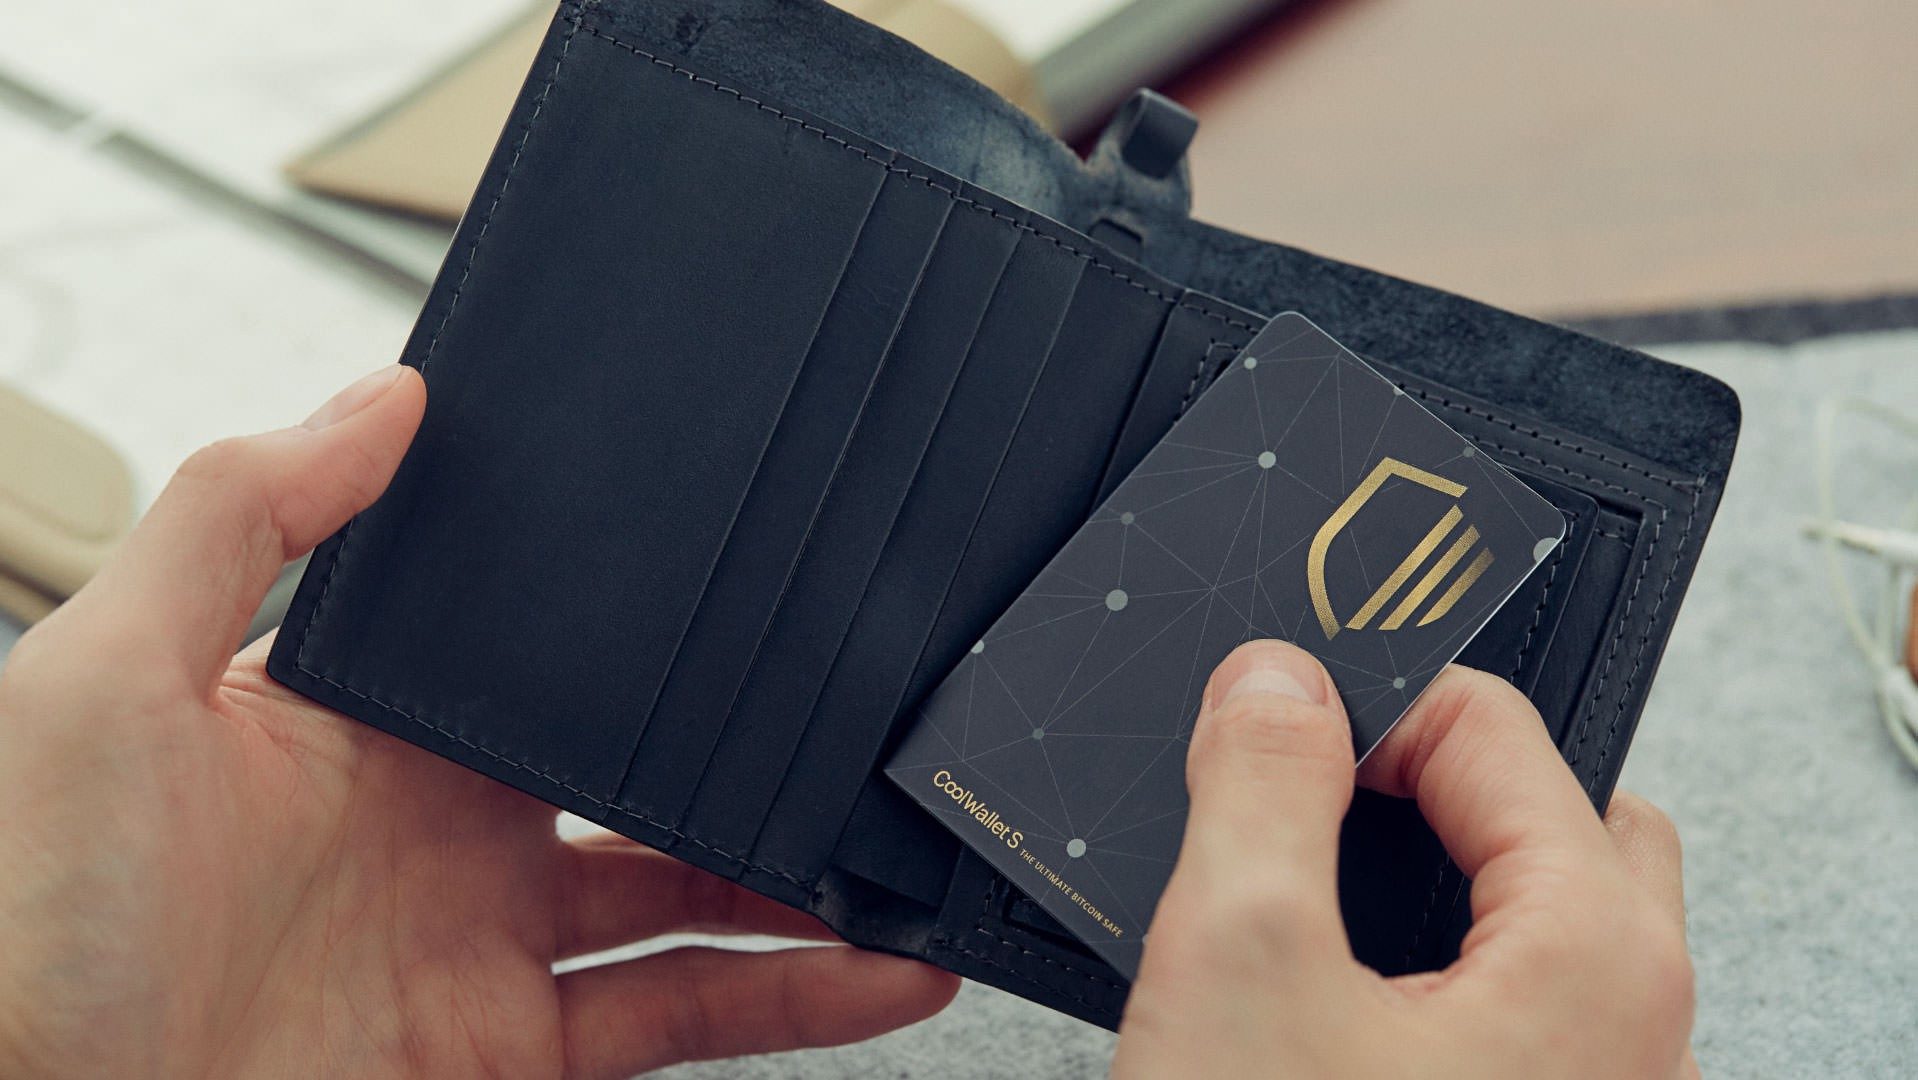 Top 10 Frequently Asked Questions about the CoolWallet S